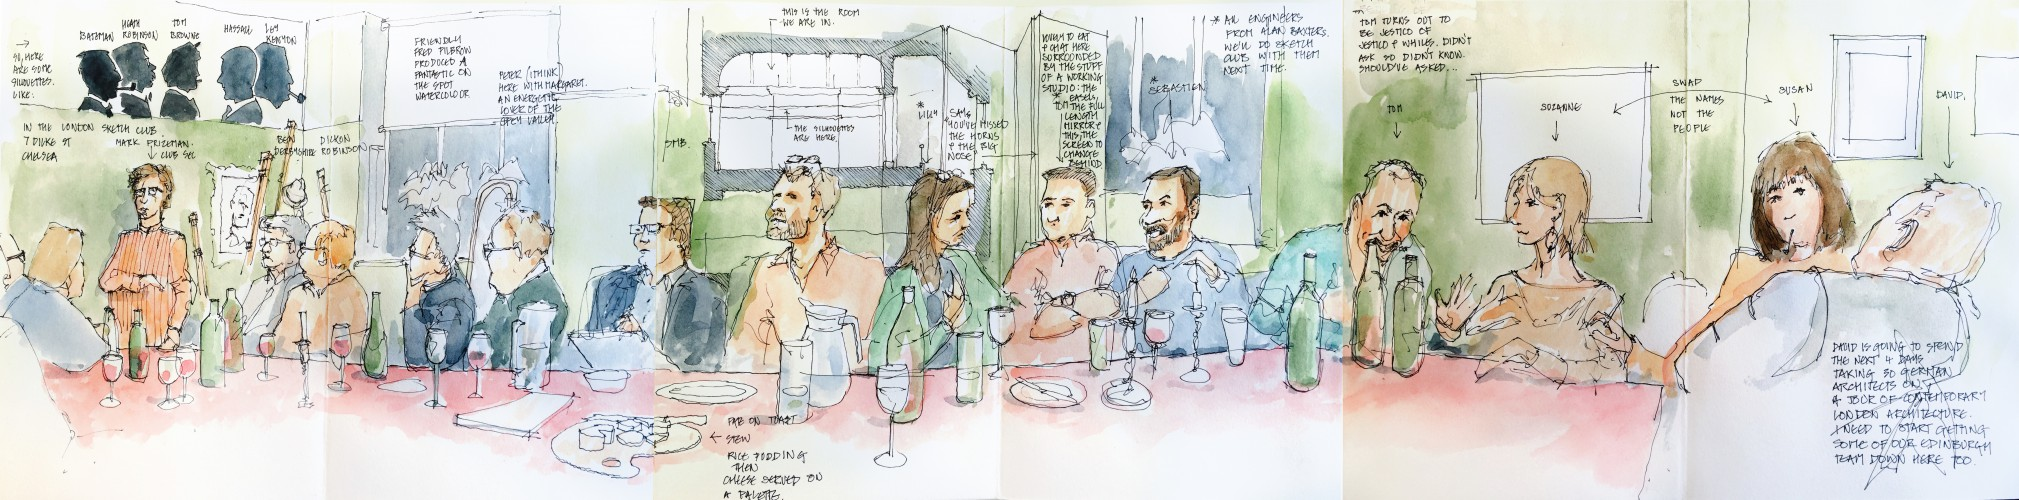 London Sketch Club - 30 September 2015